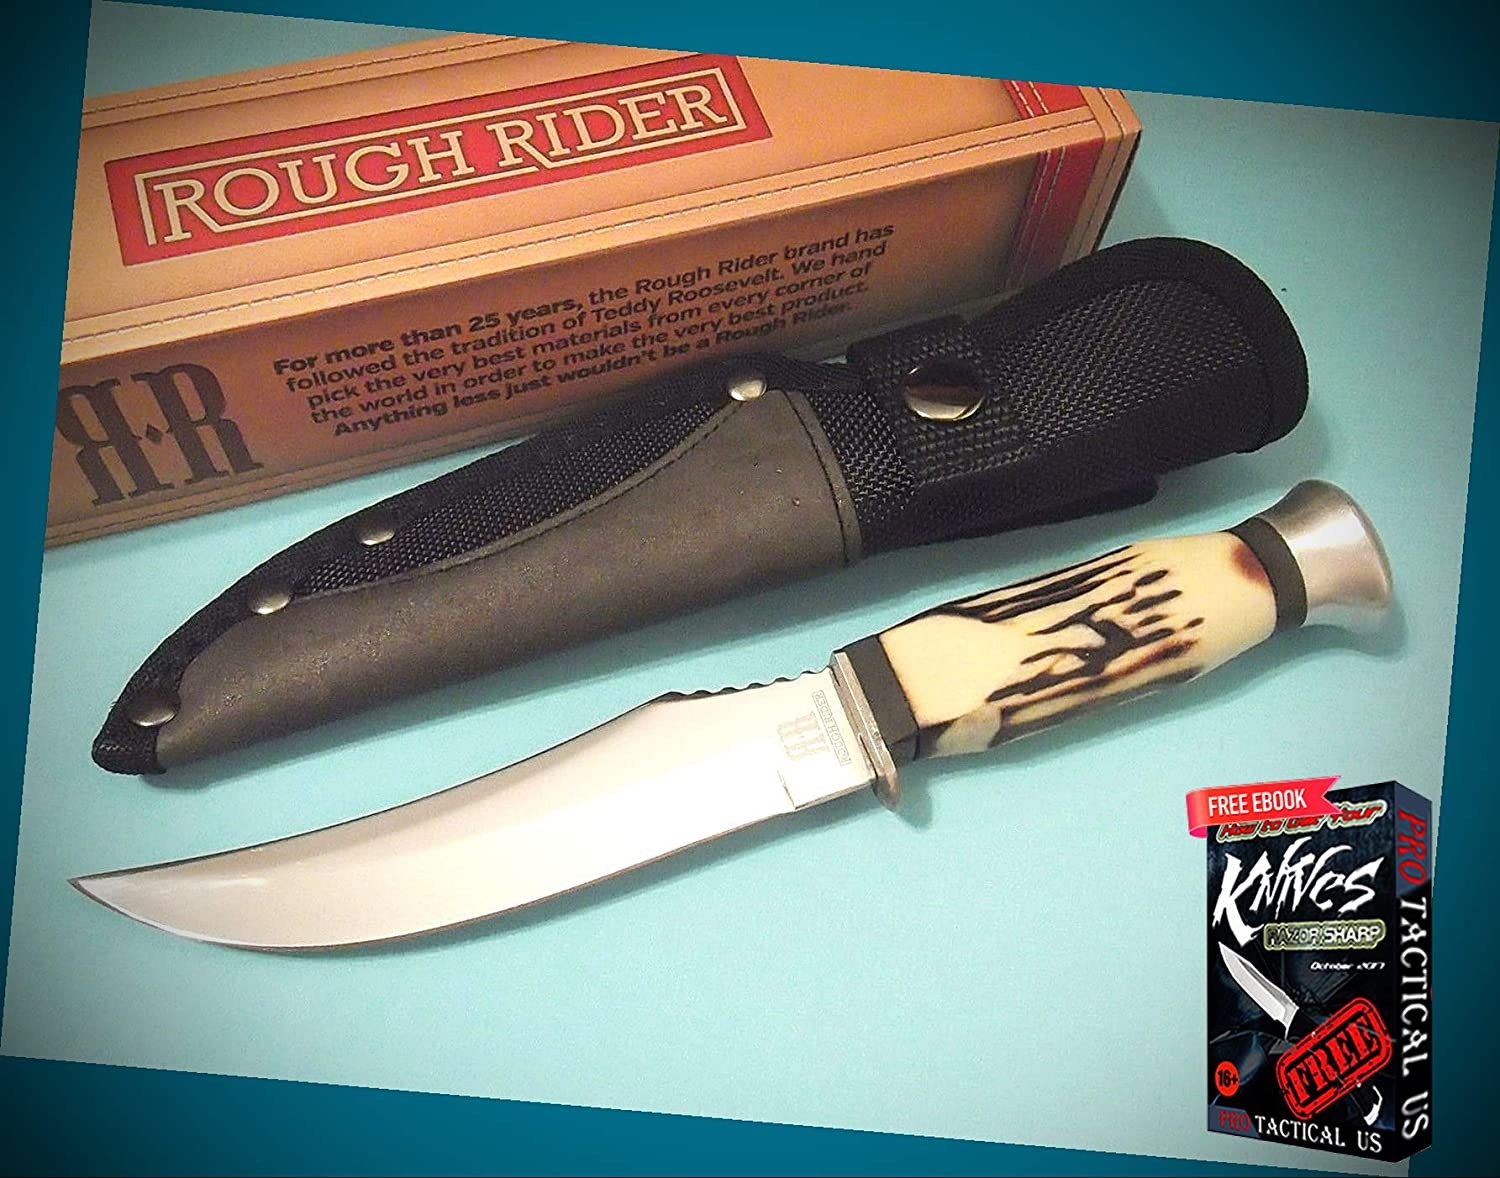 New ROUGH RIDER Imitation Stag delrin fixed blade hunt Pro Tactical Knife 9